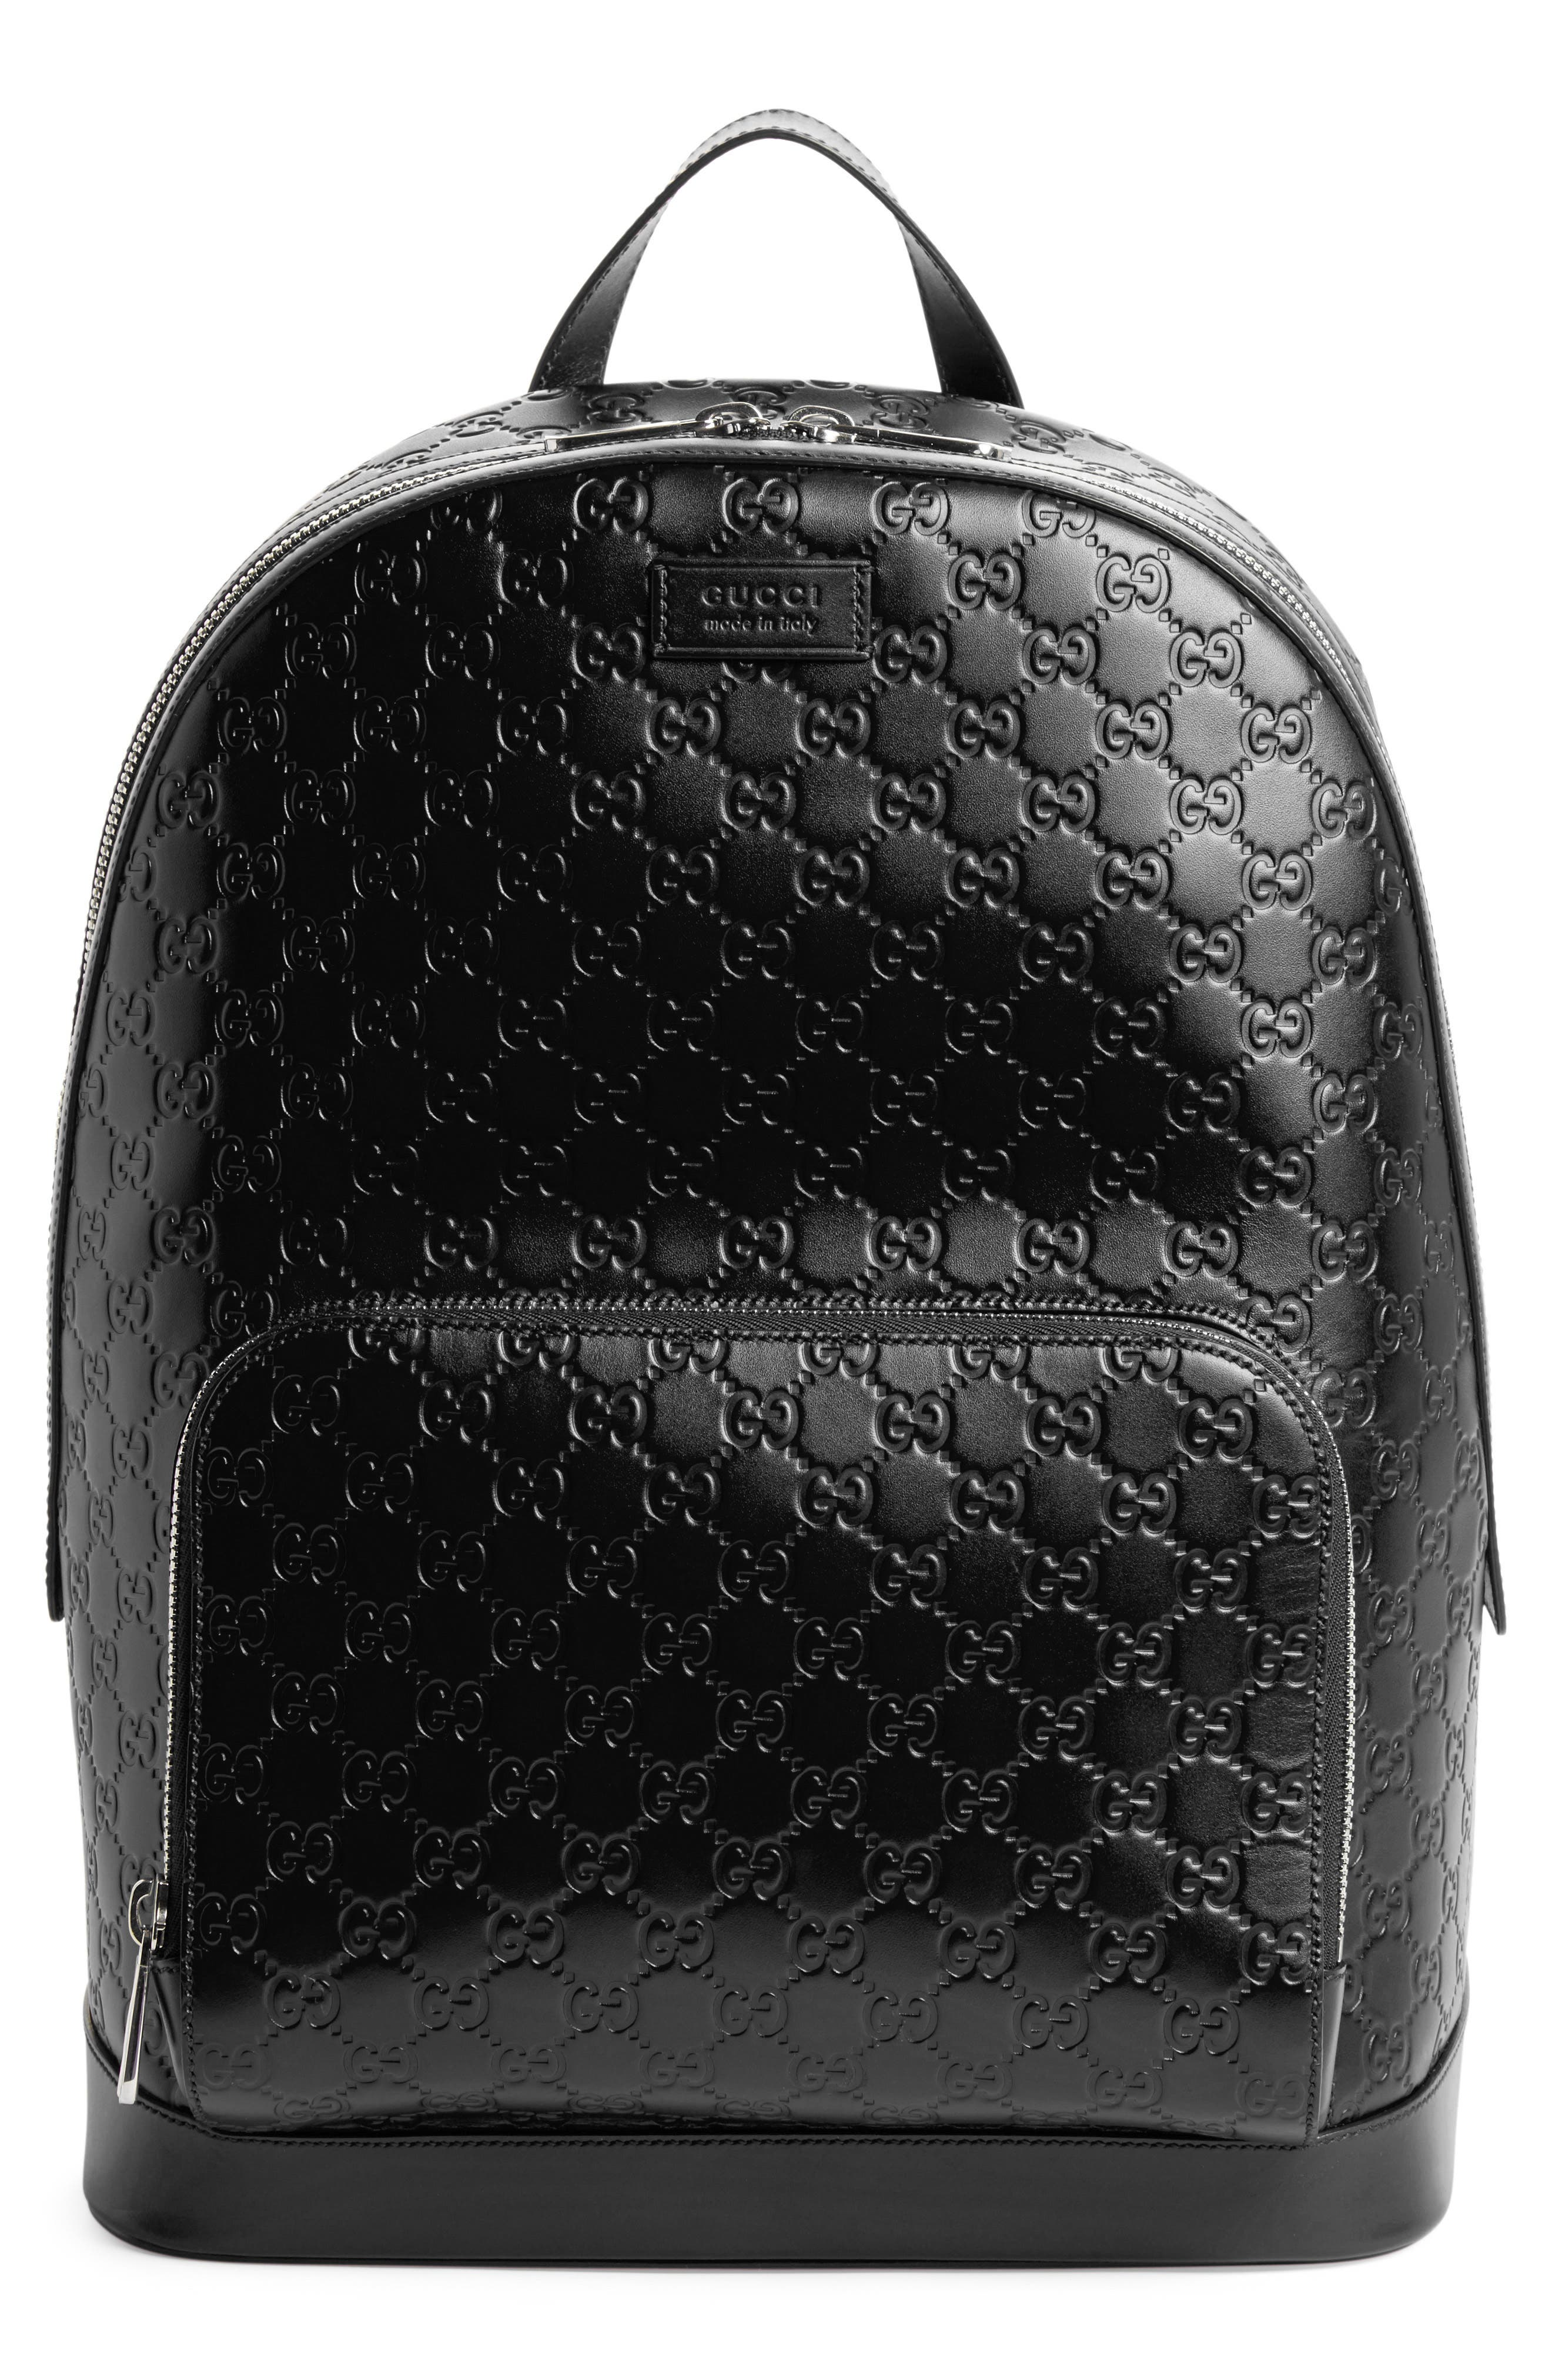 Embossed Leather Backpack,                             Main thumbnail 1, color,                             BLACK